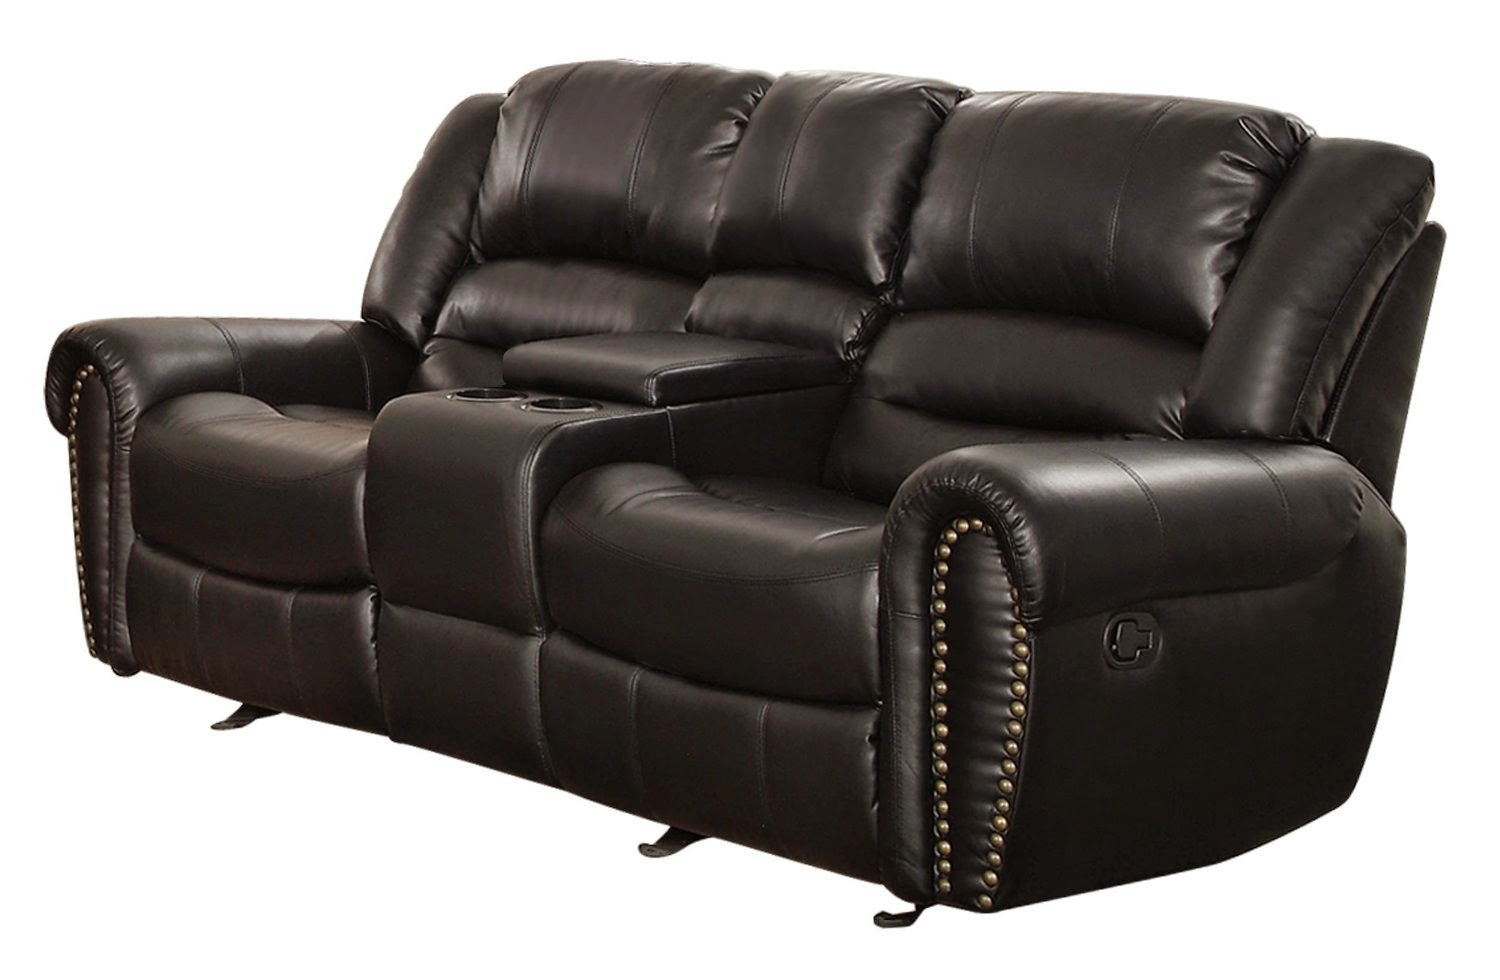 Reclining Sofa Loveseat And Chair Sets: March 2015